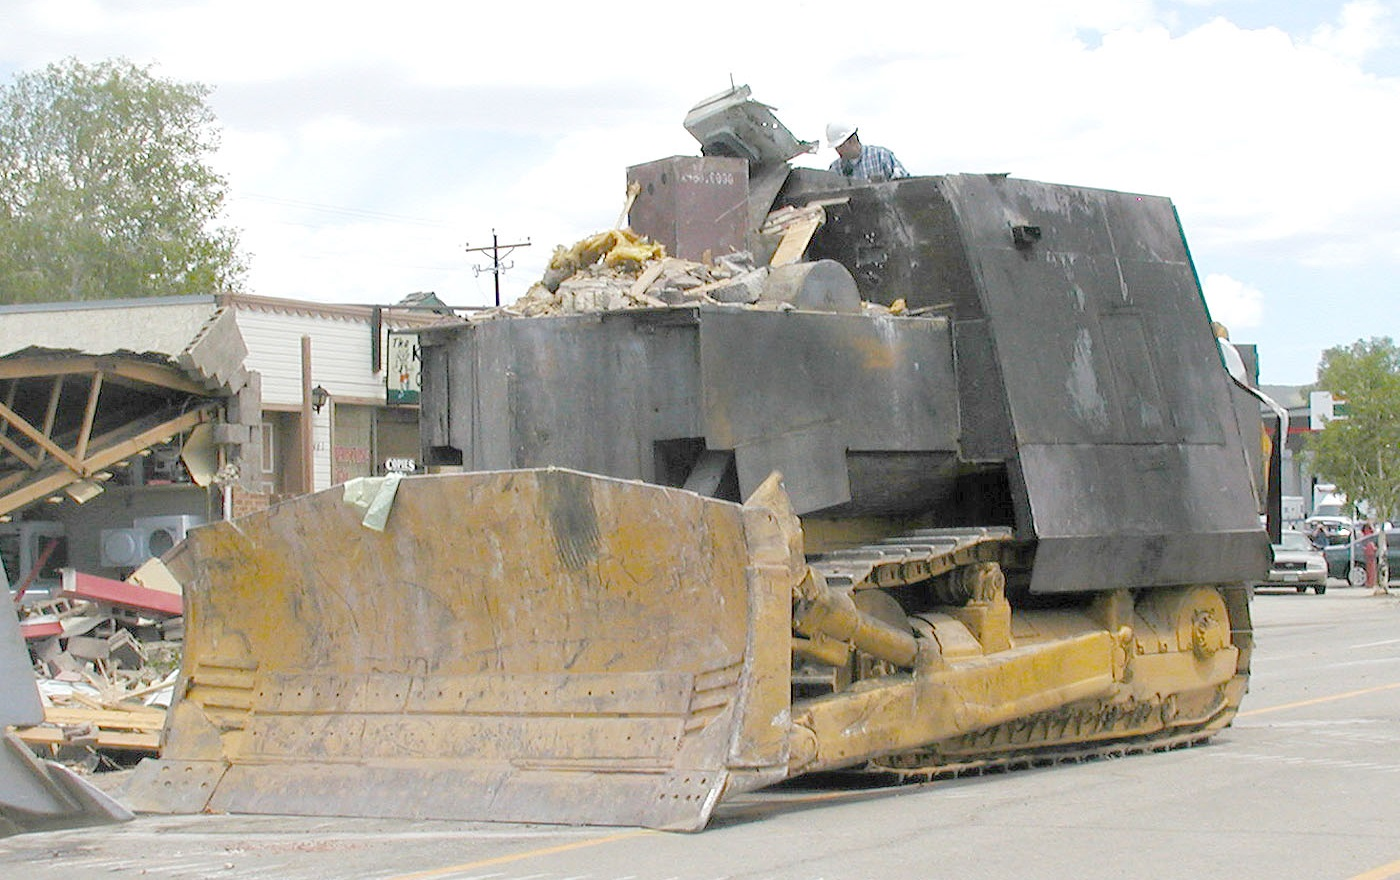 Photo: Killdozer